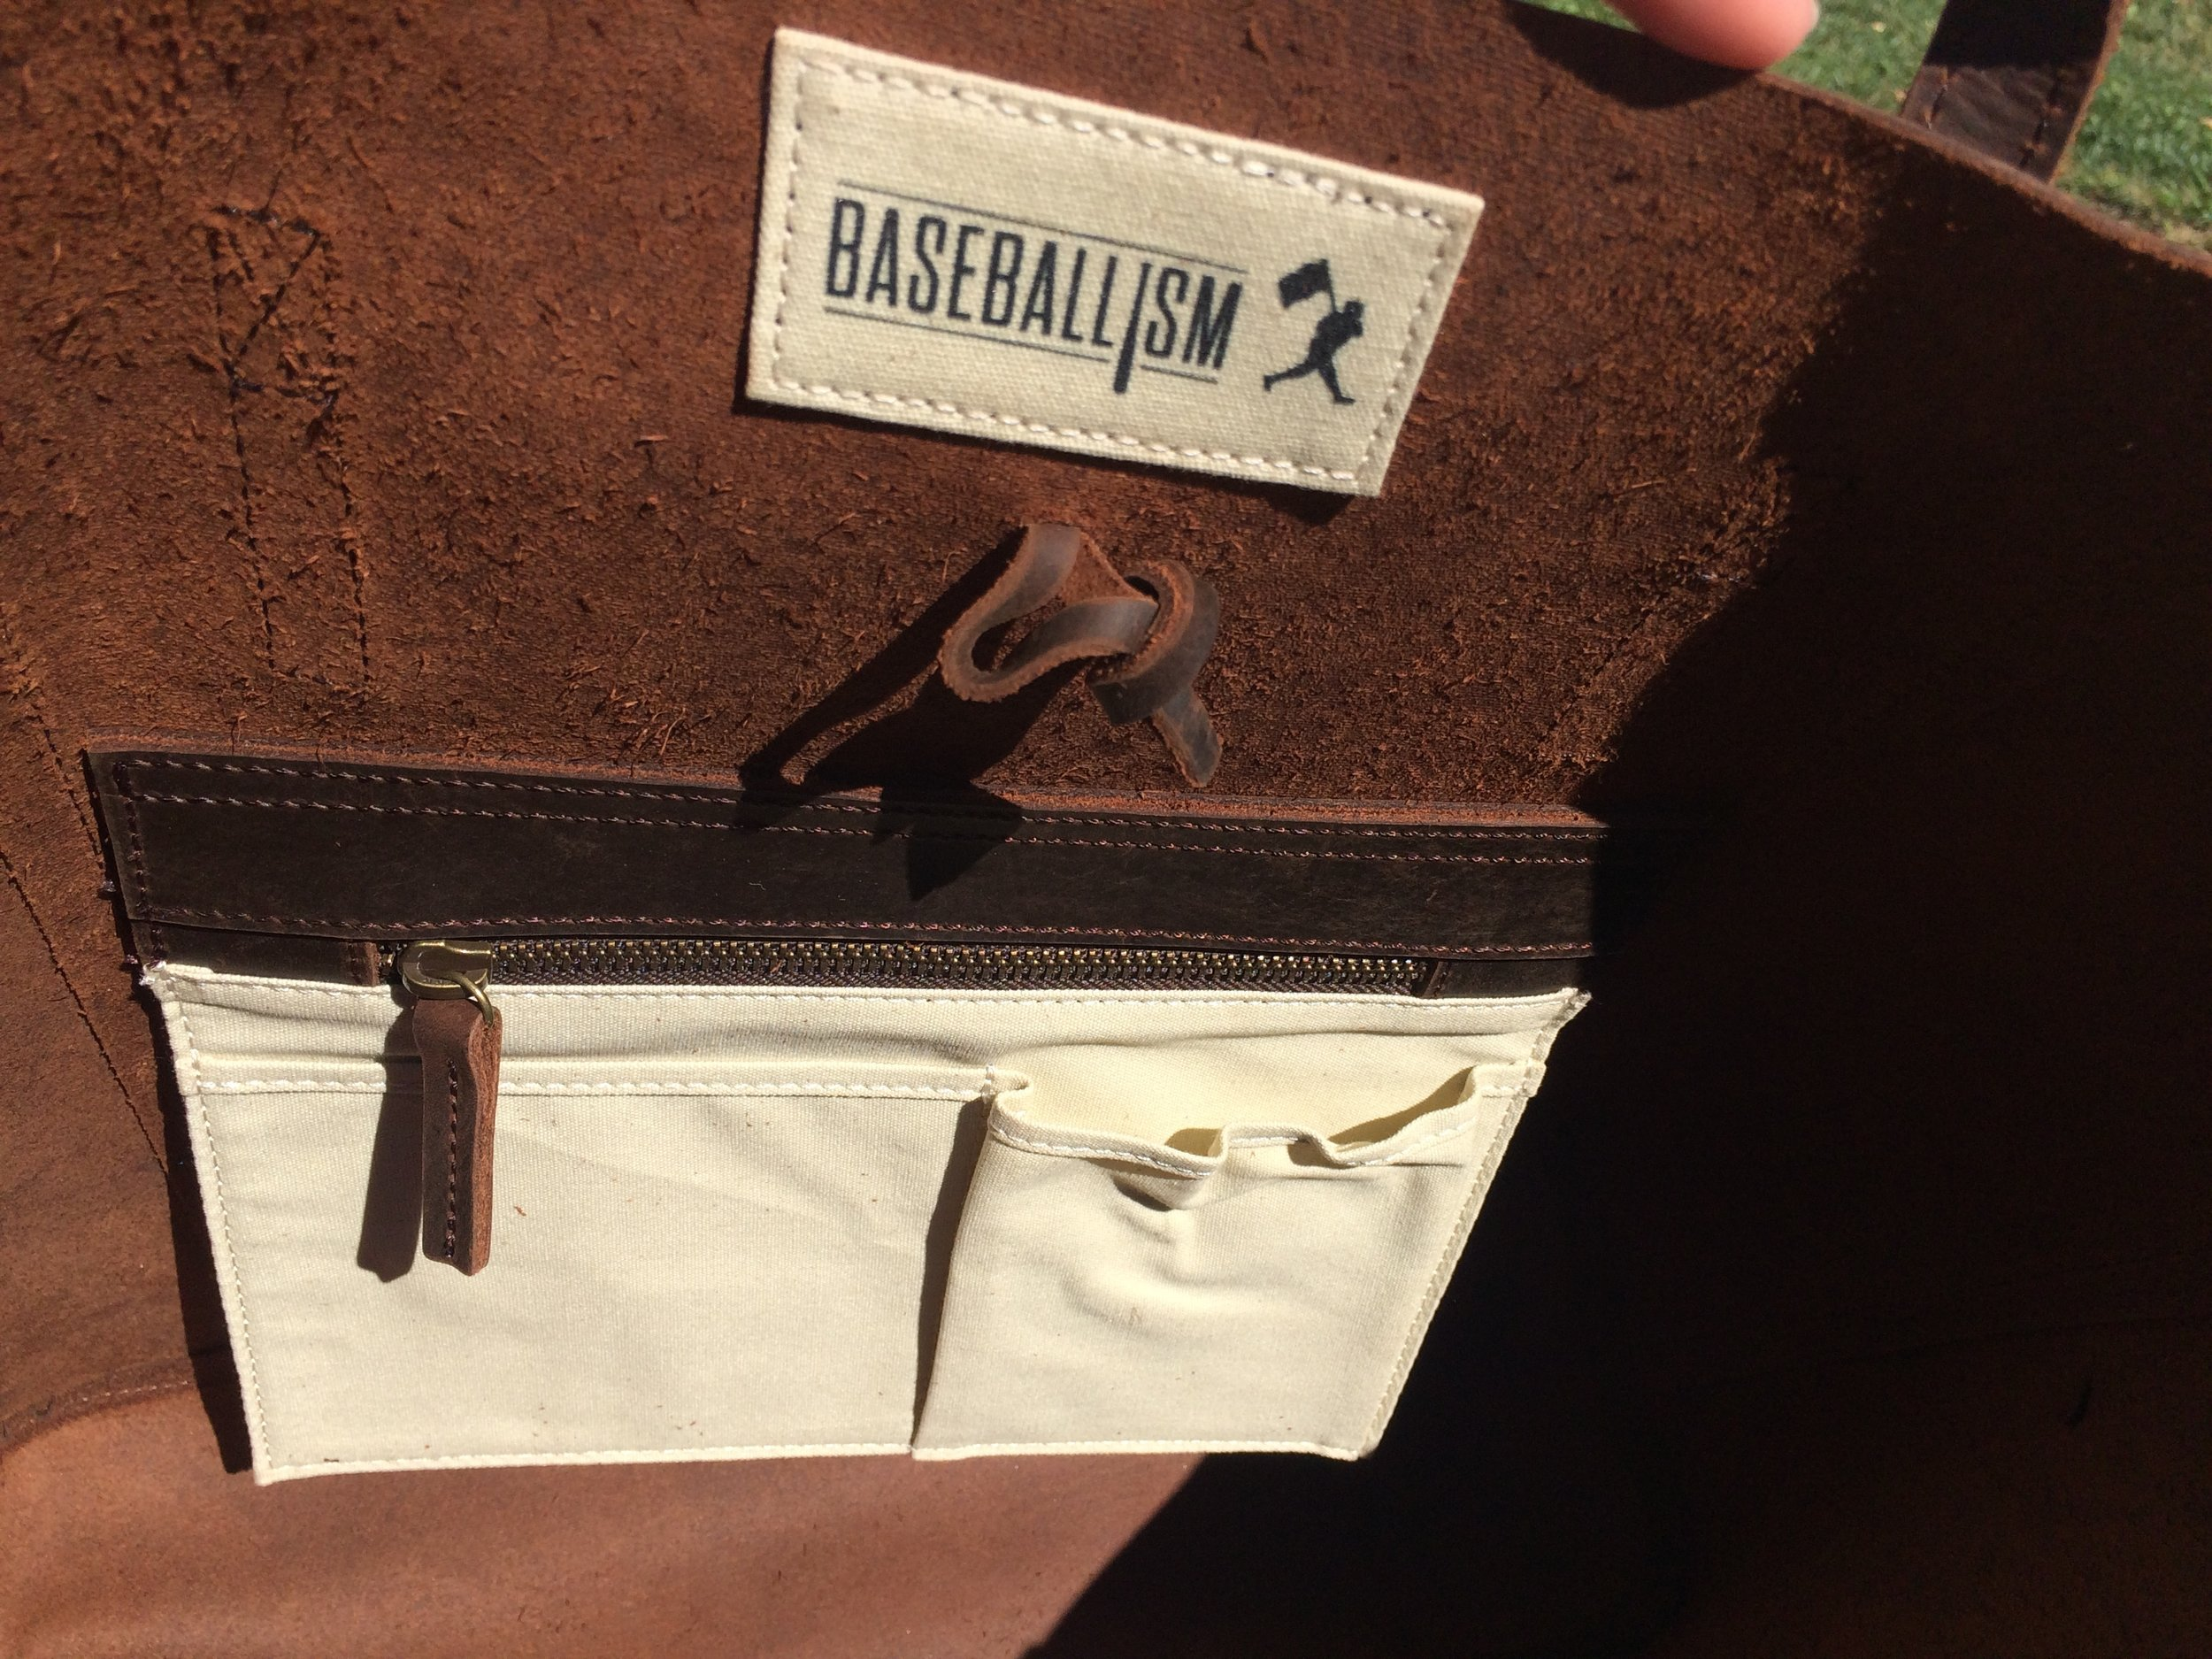 Baseballism Review - whatthegirlssay.com